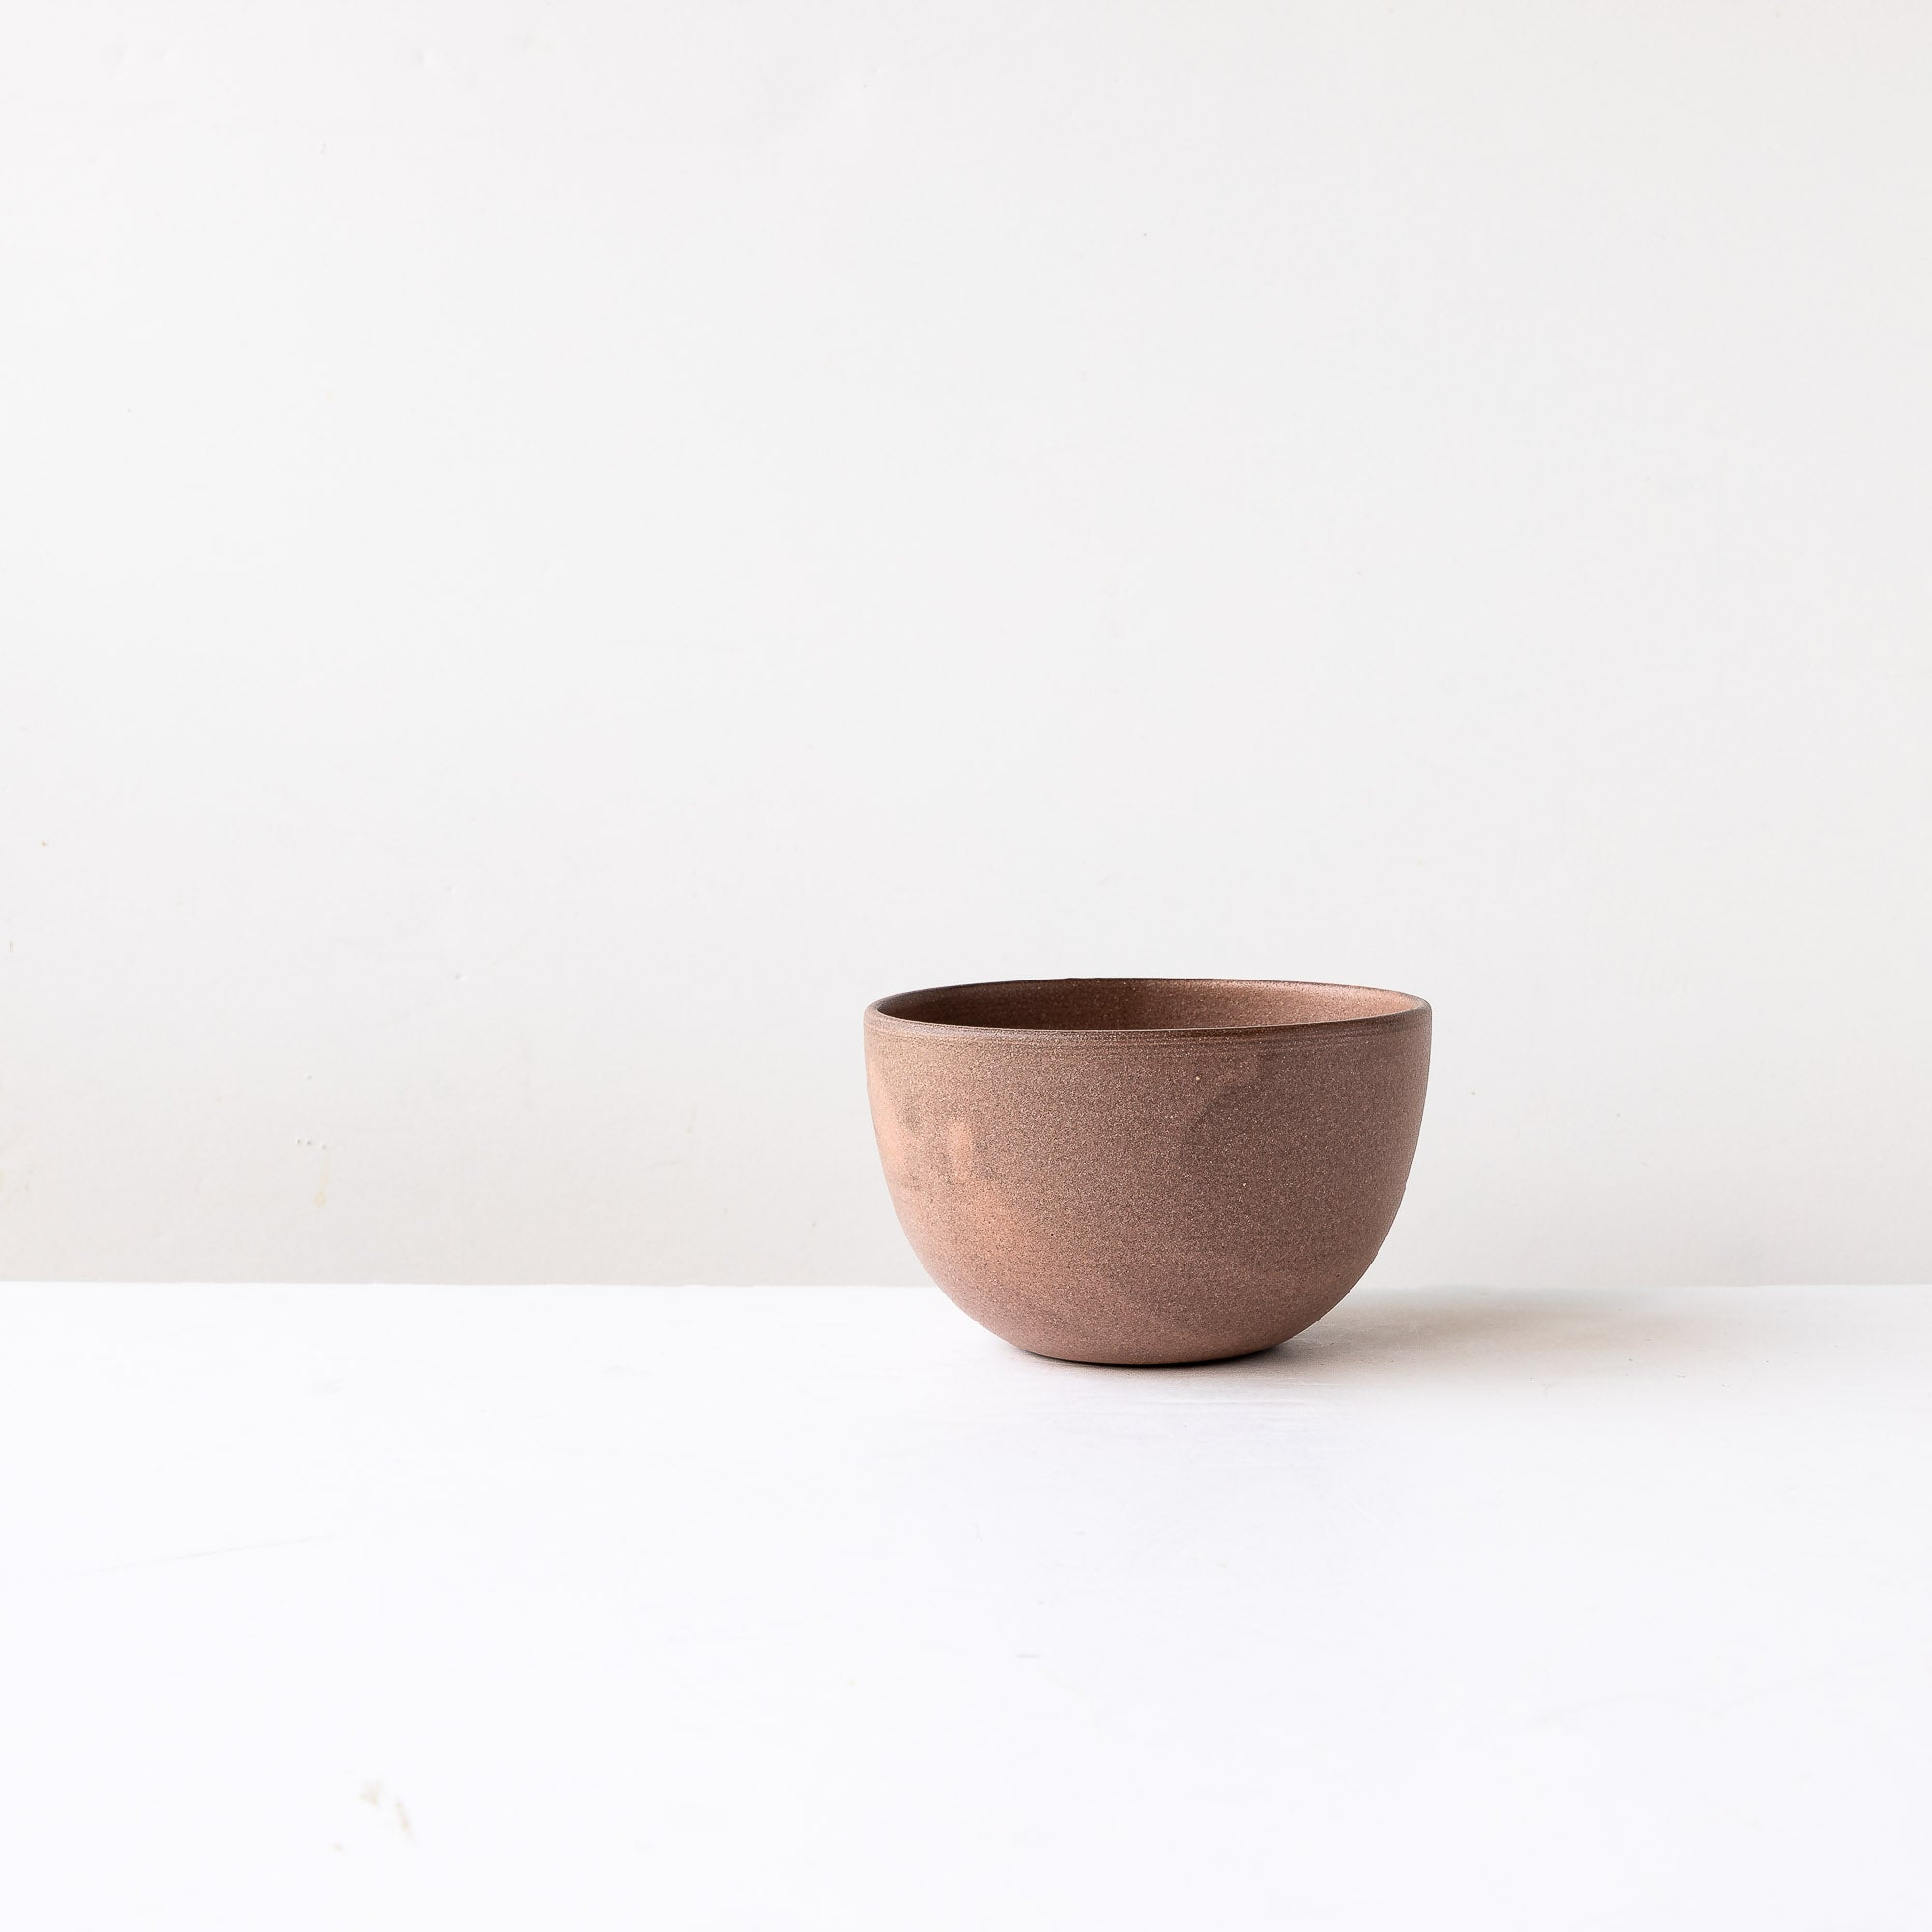 Three Handmade Stoneware Breakfast Bowls - Sold by Chic & Basta